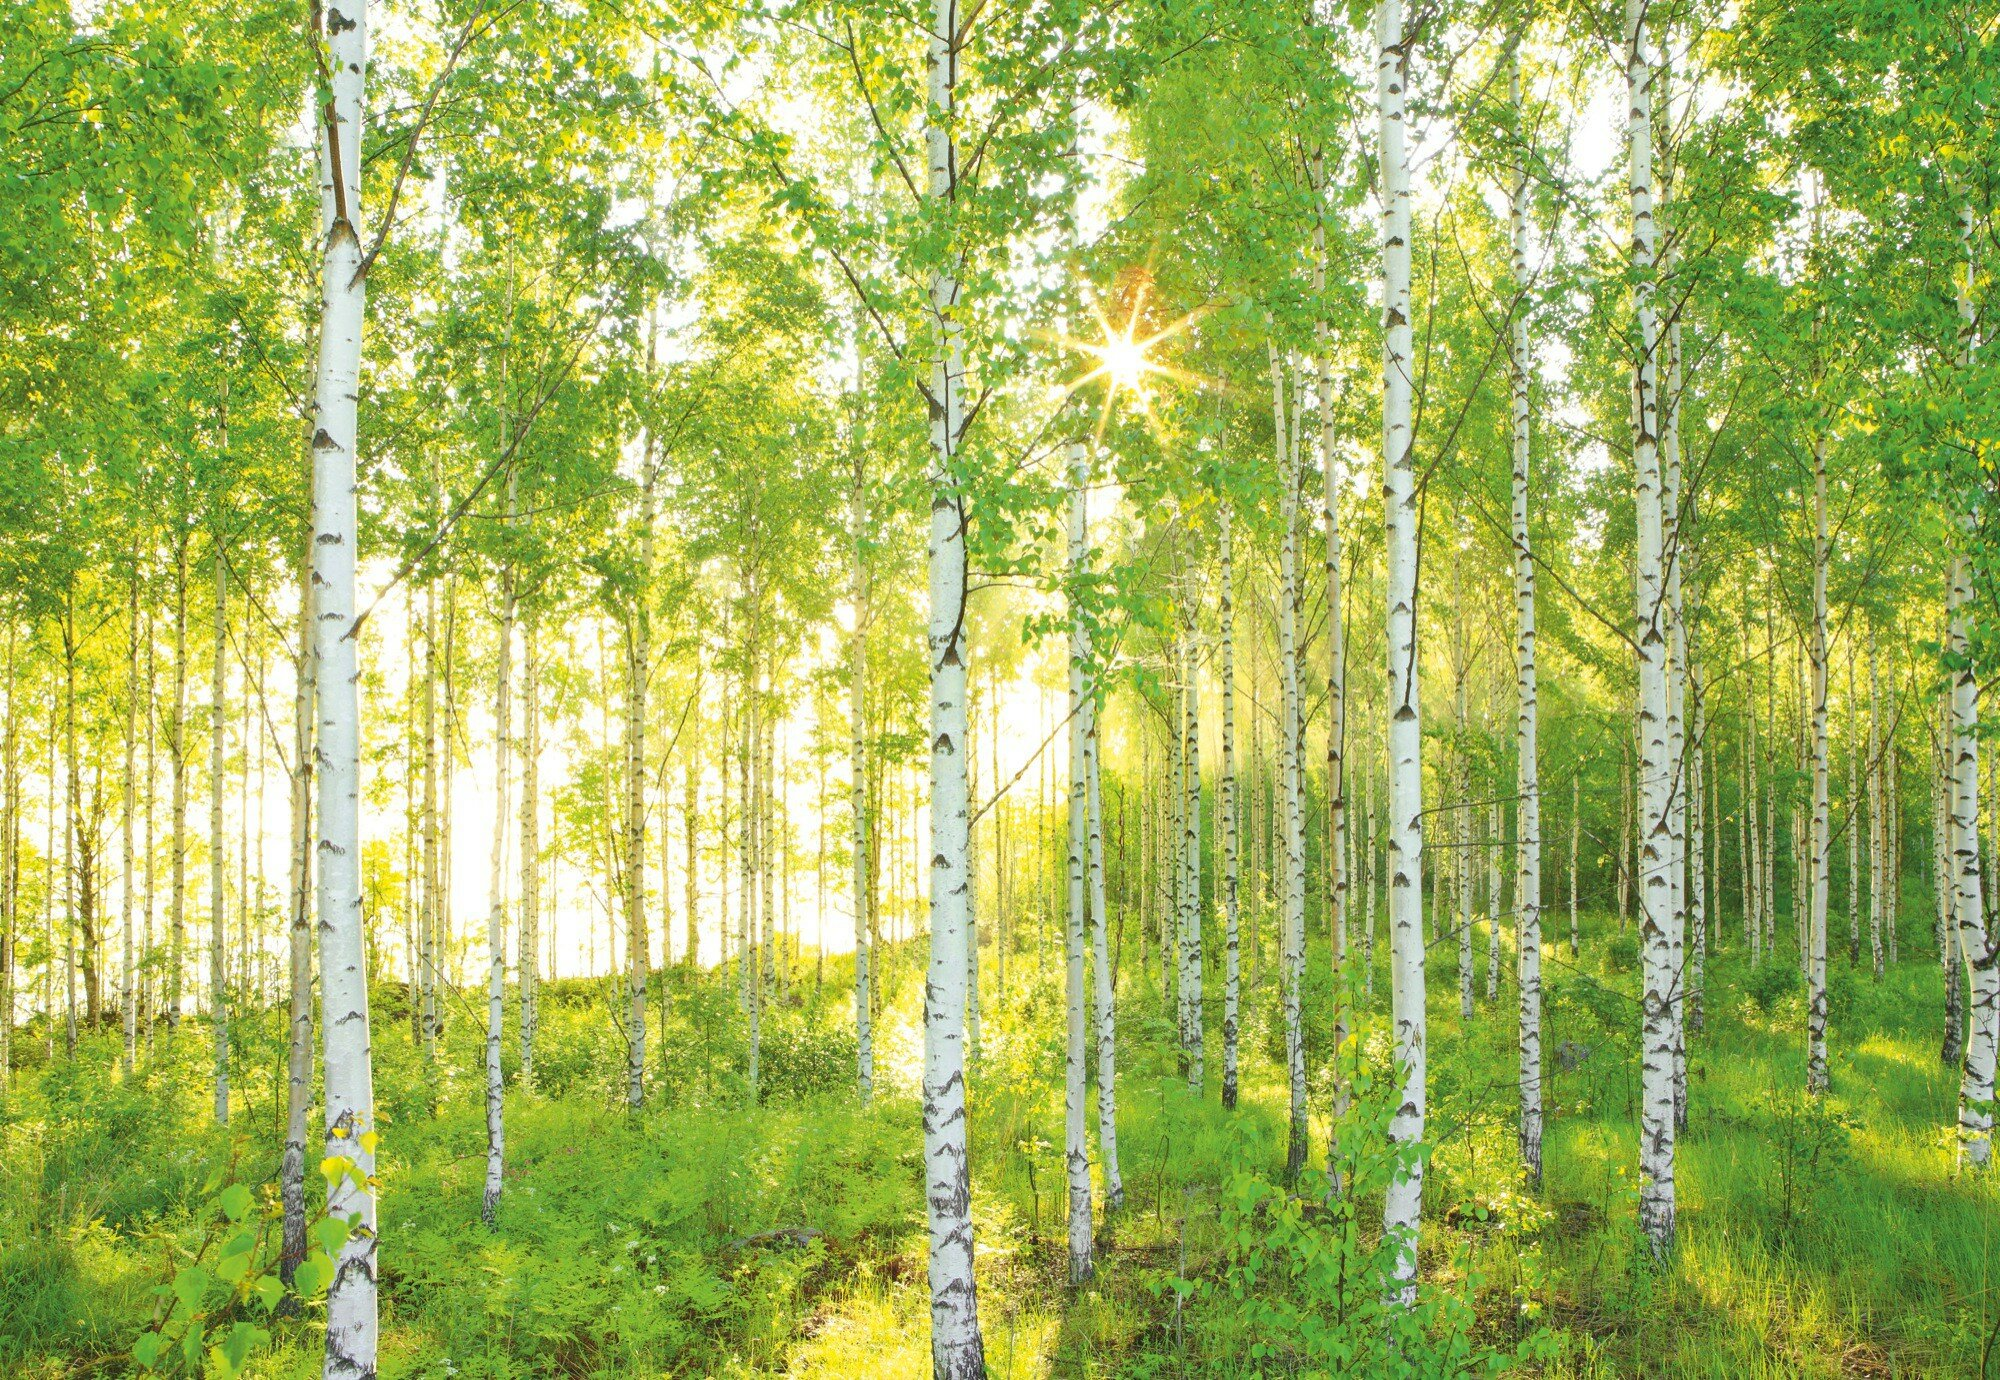 Komar National Geographic Sunday Spring Birch Tree Forest 4m x 248cm ...